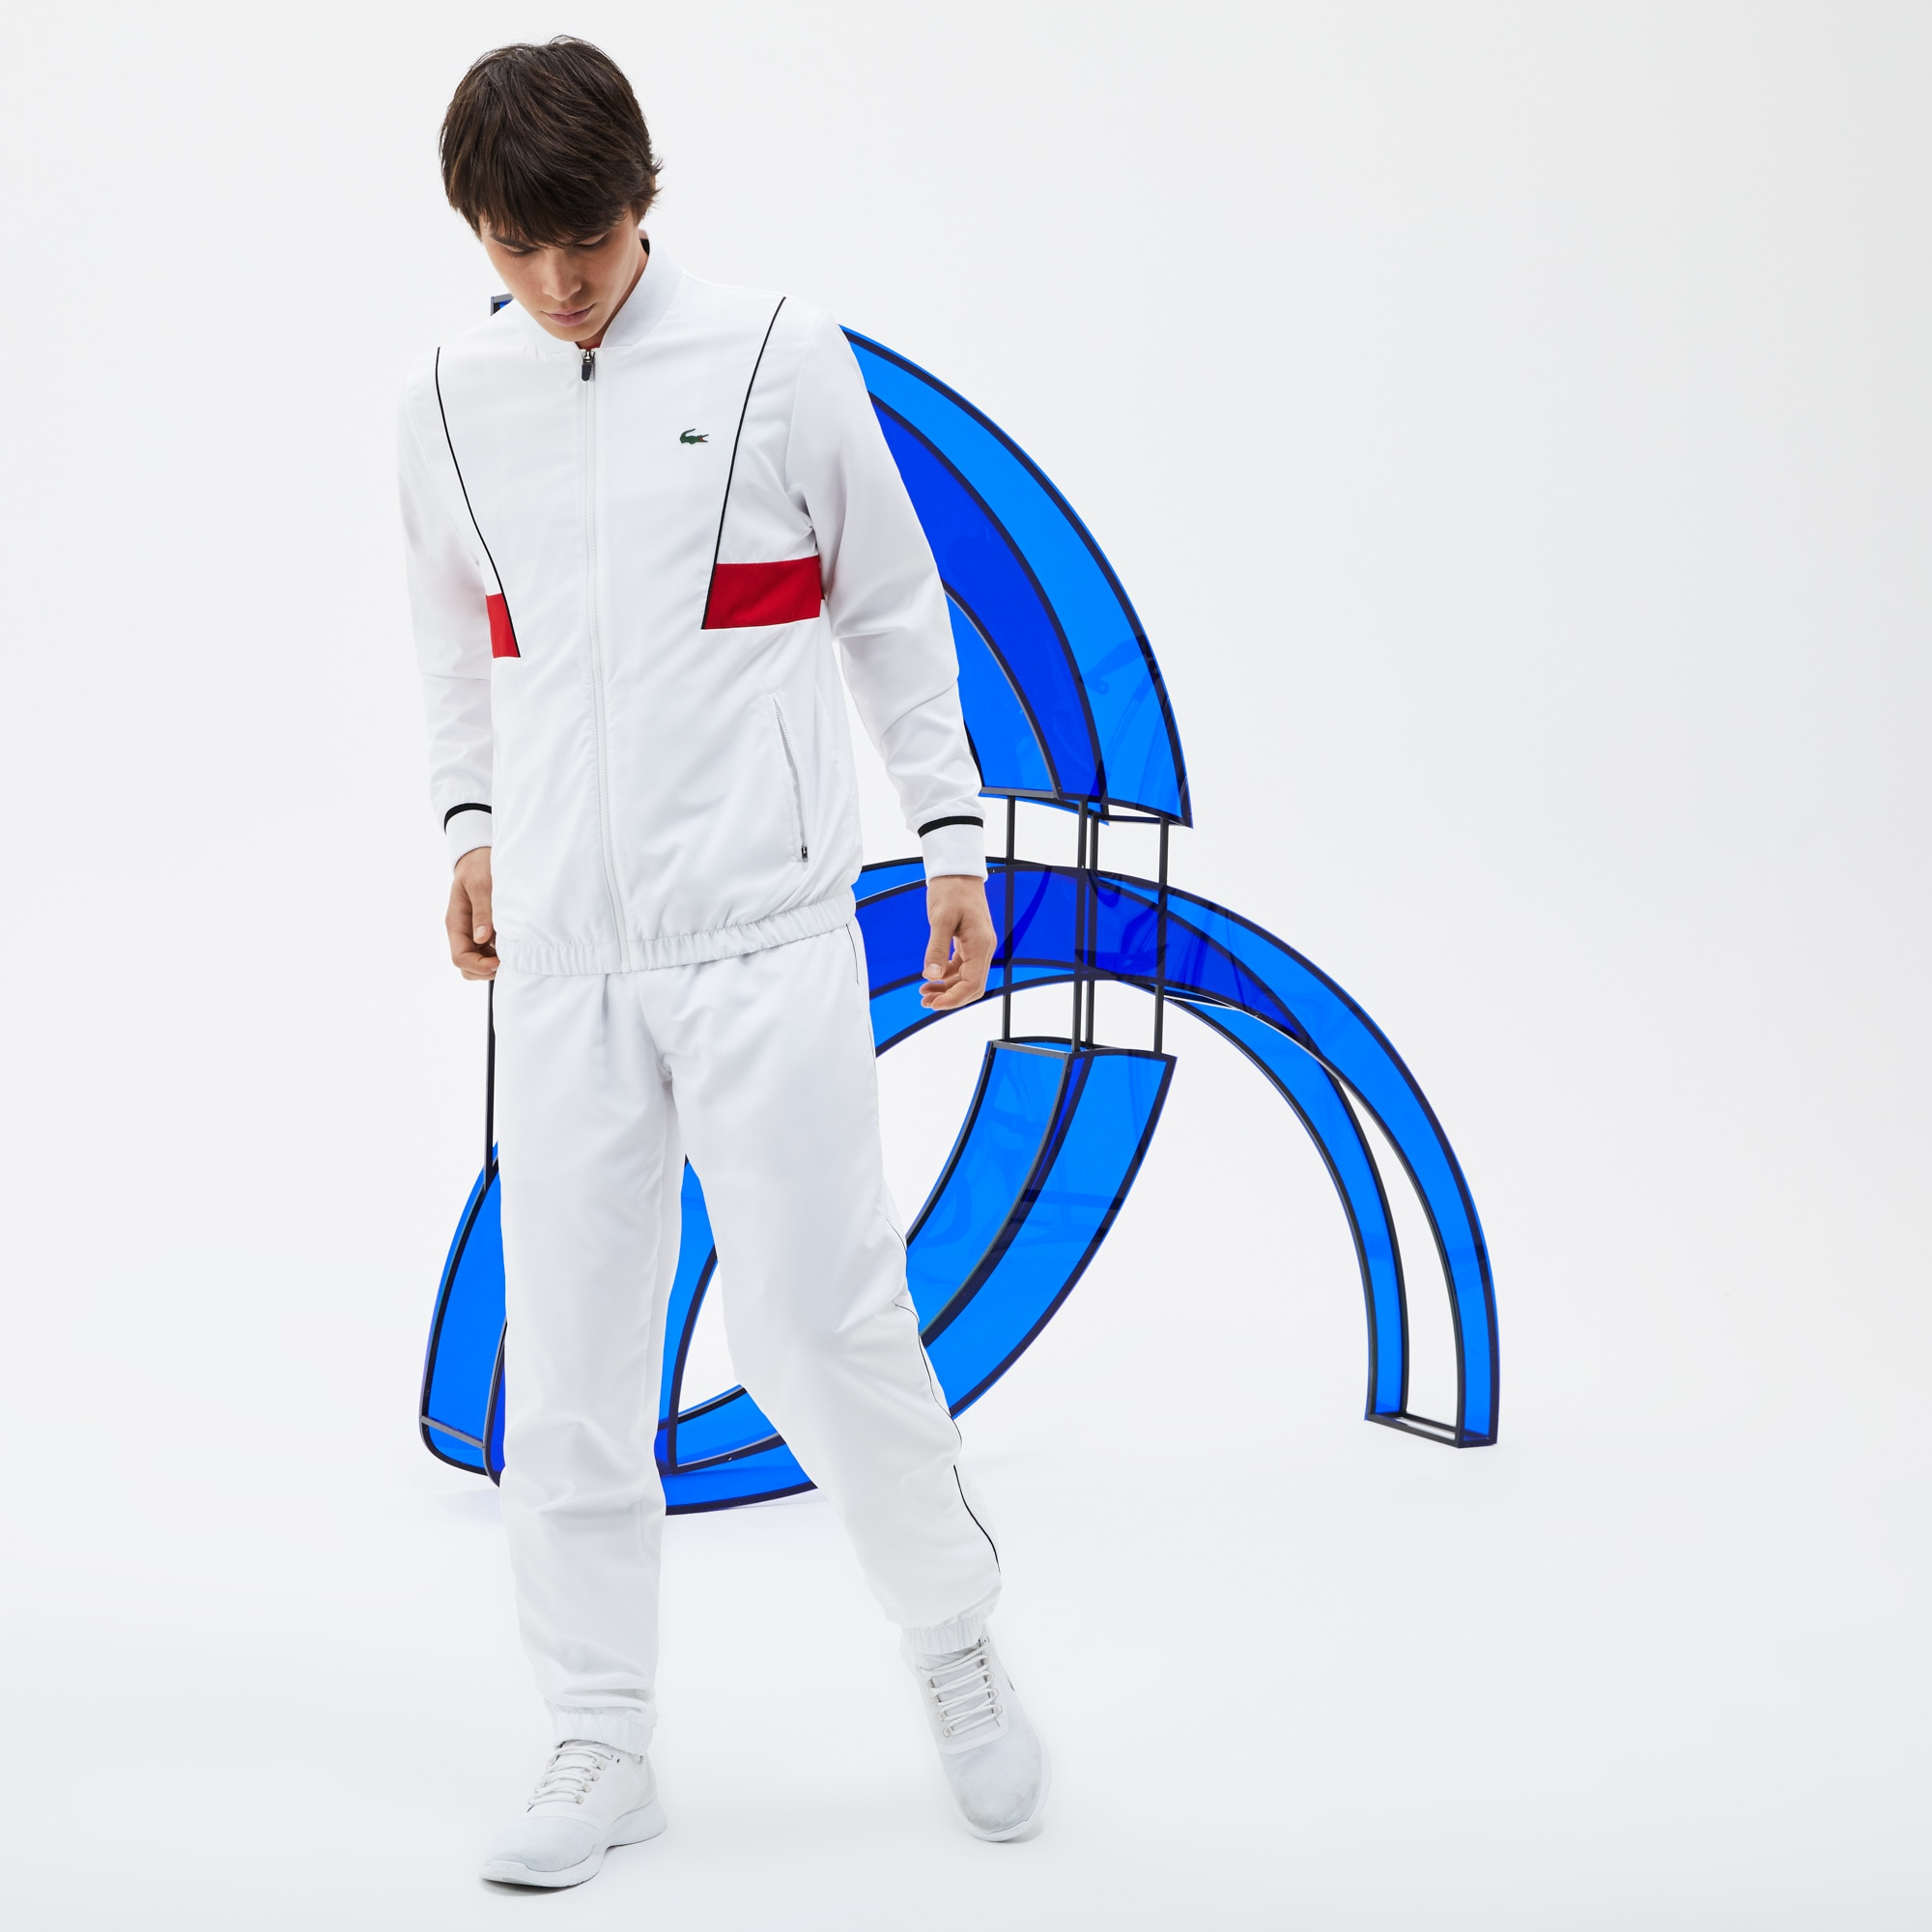 Men's LACOSTE SPORT NOVAK DJOKOVIC COLLECTION Taffeta Tracksuit